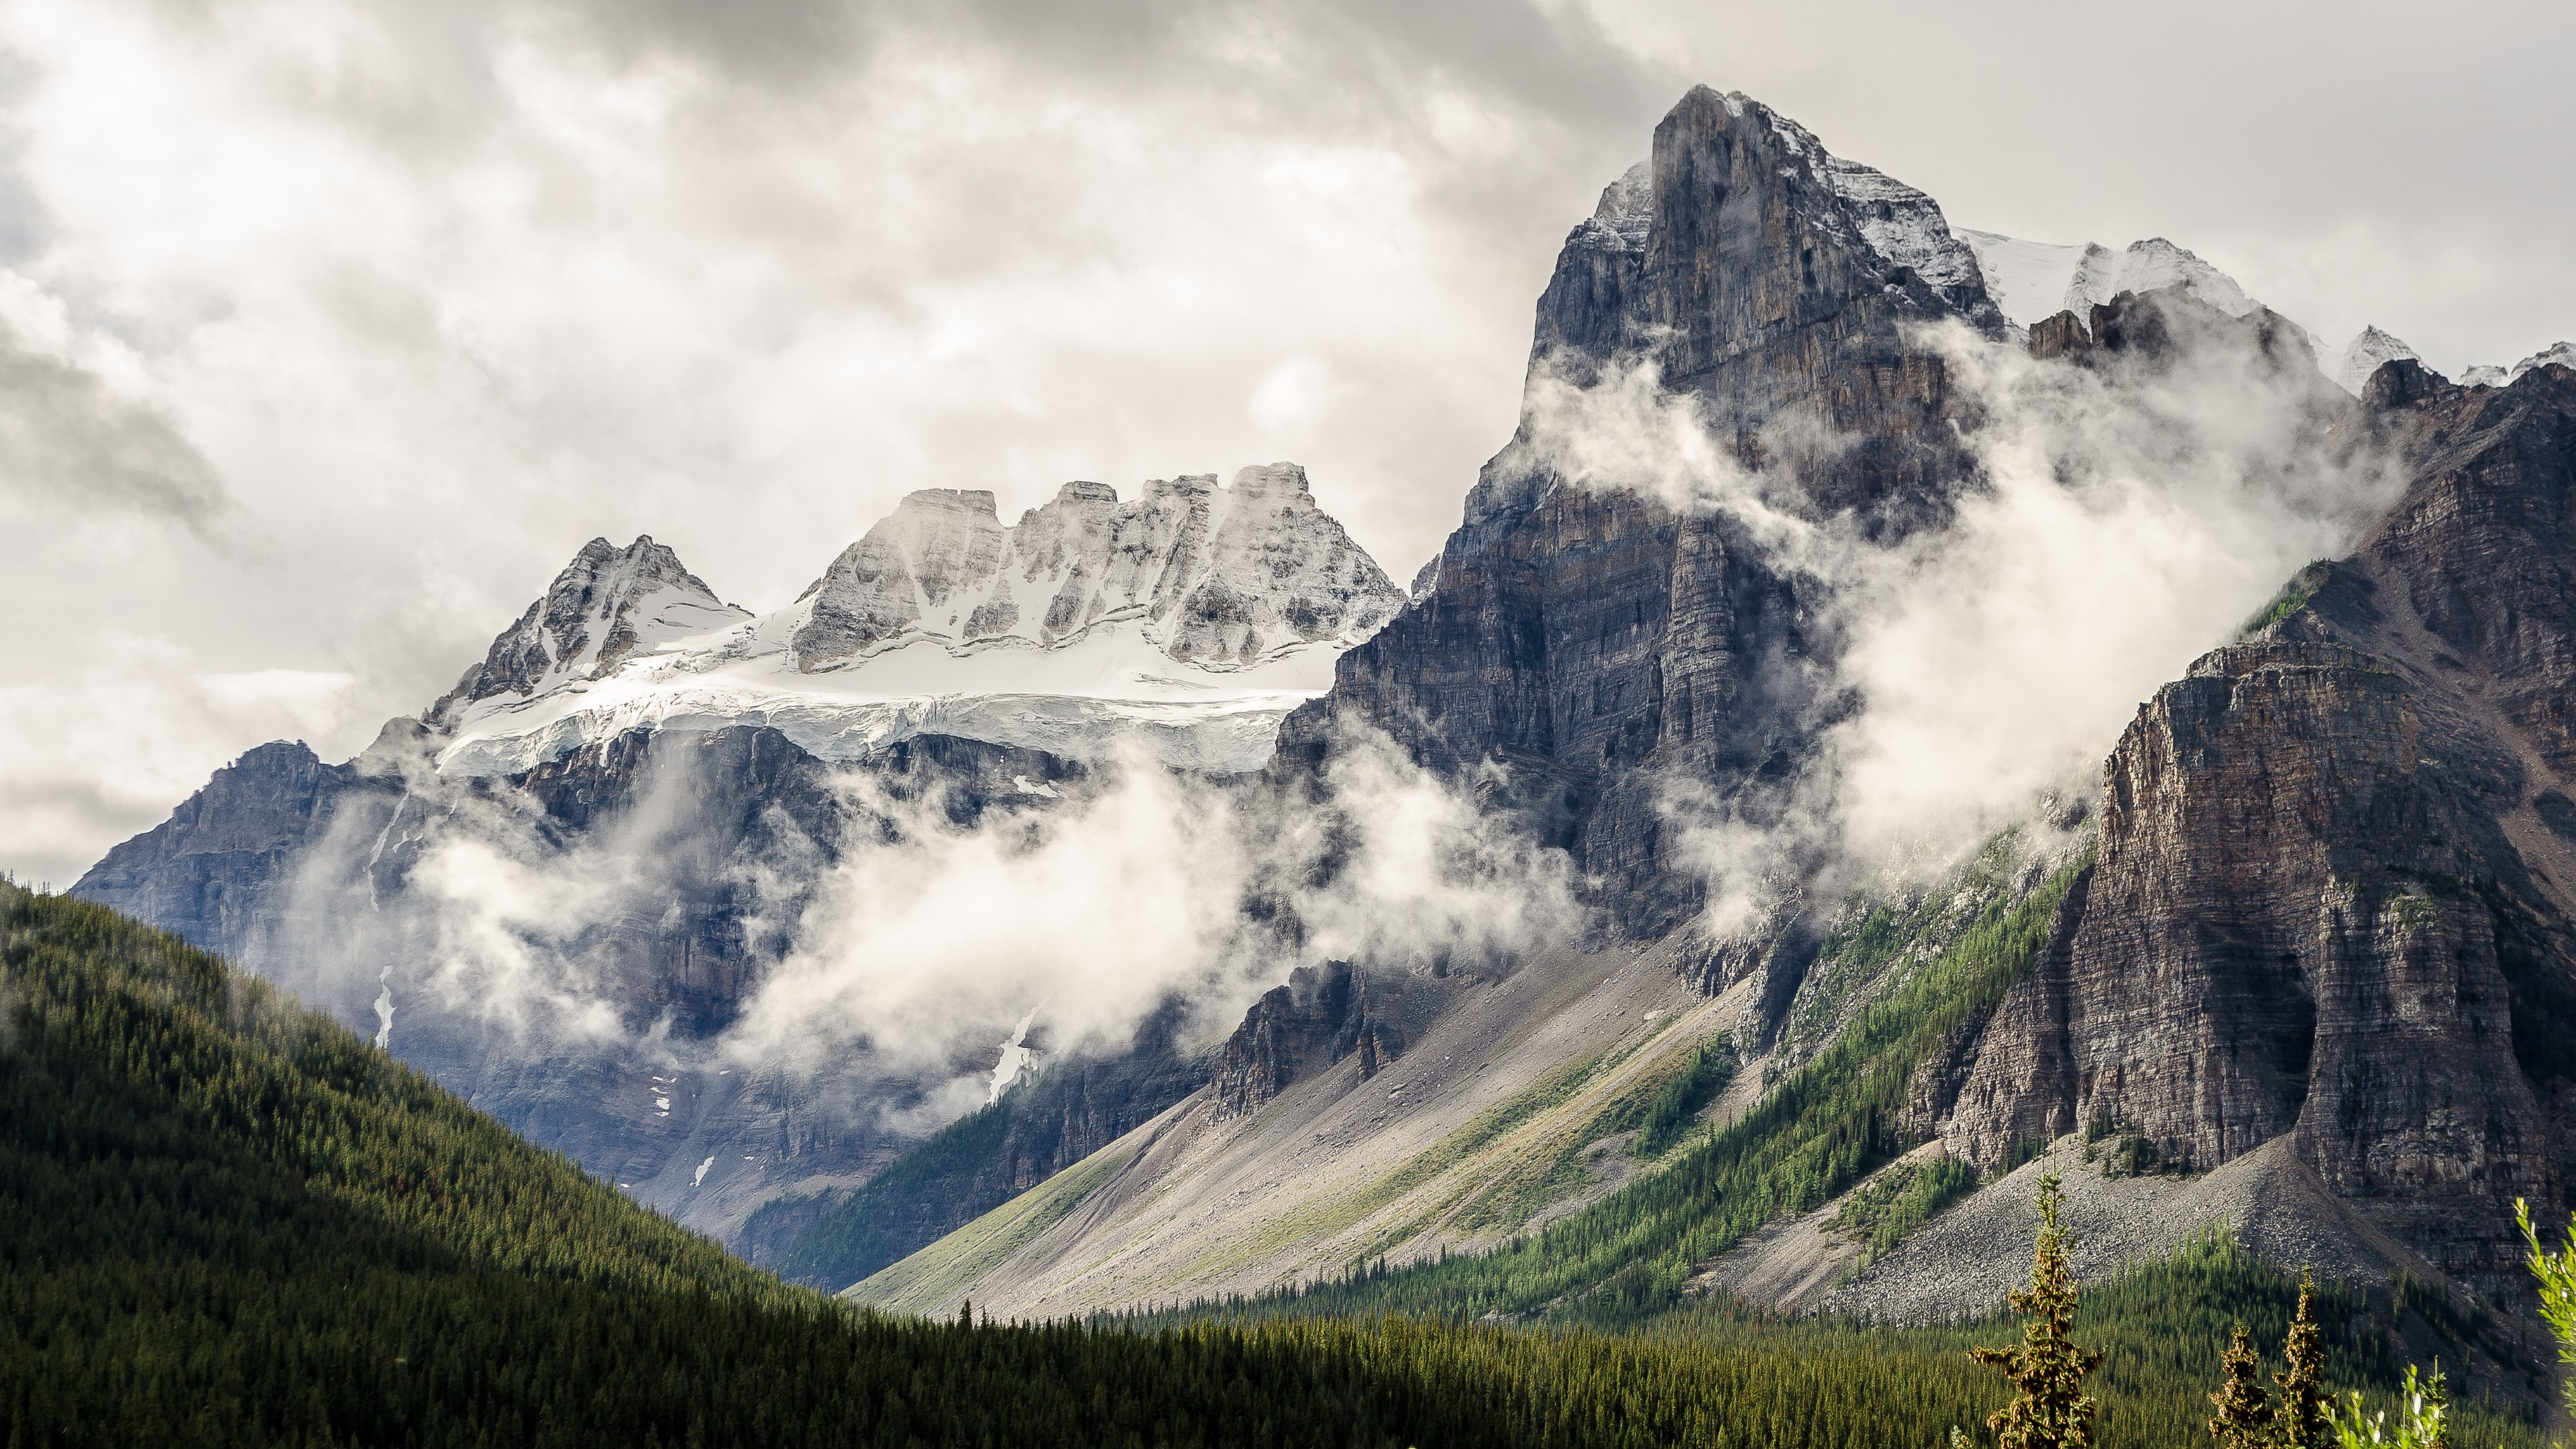 Alberta, Canada, natural landscape wallpaper 3840x2160